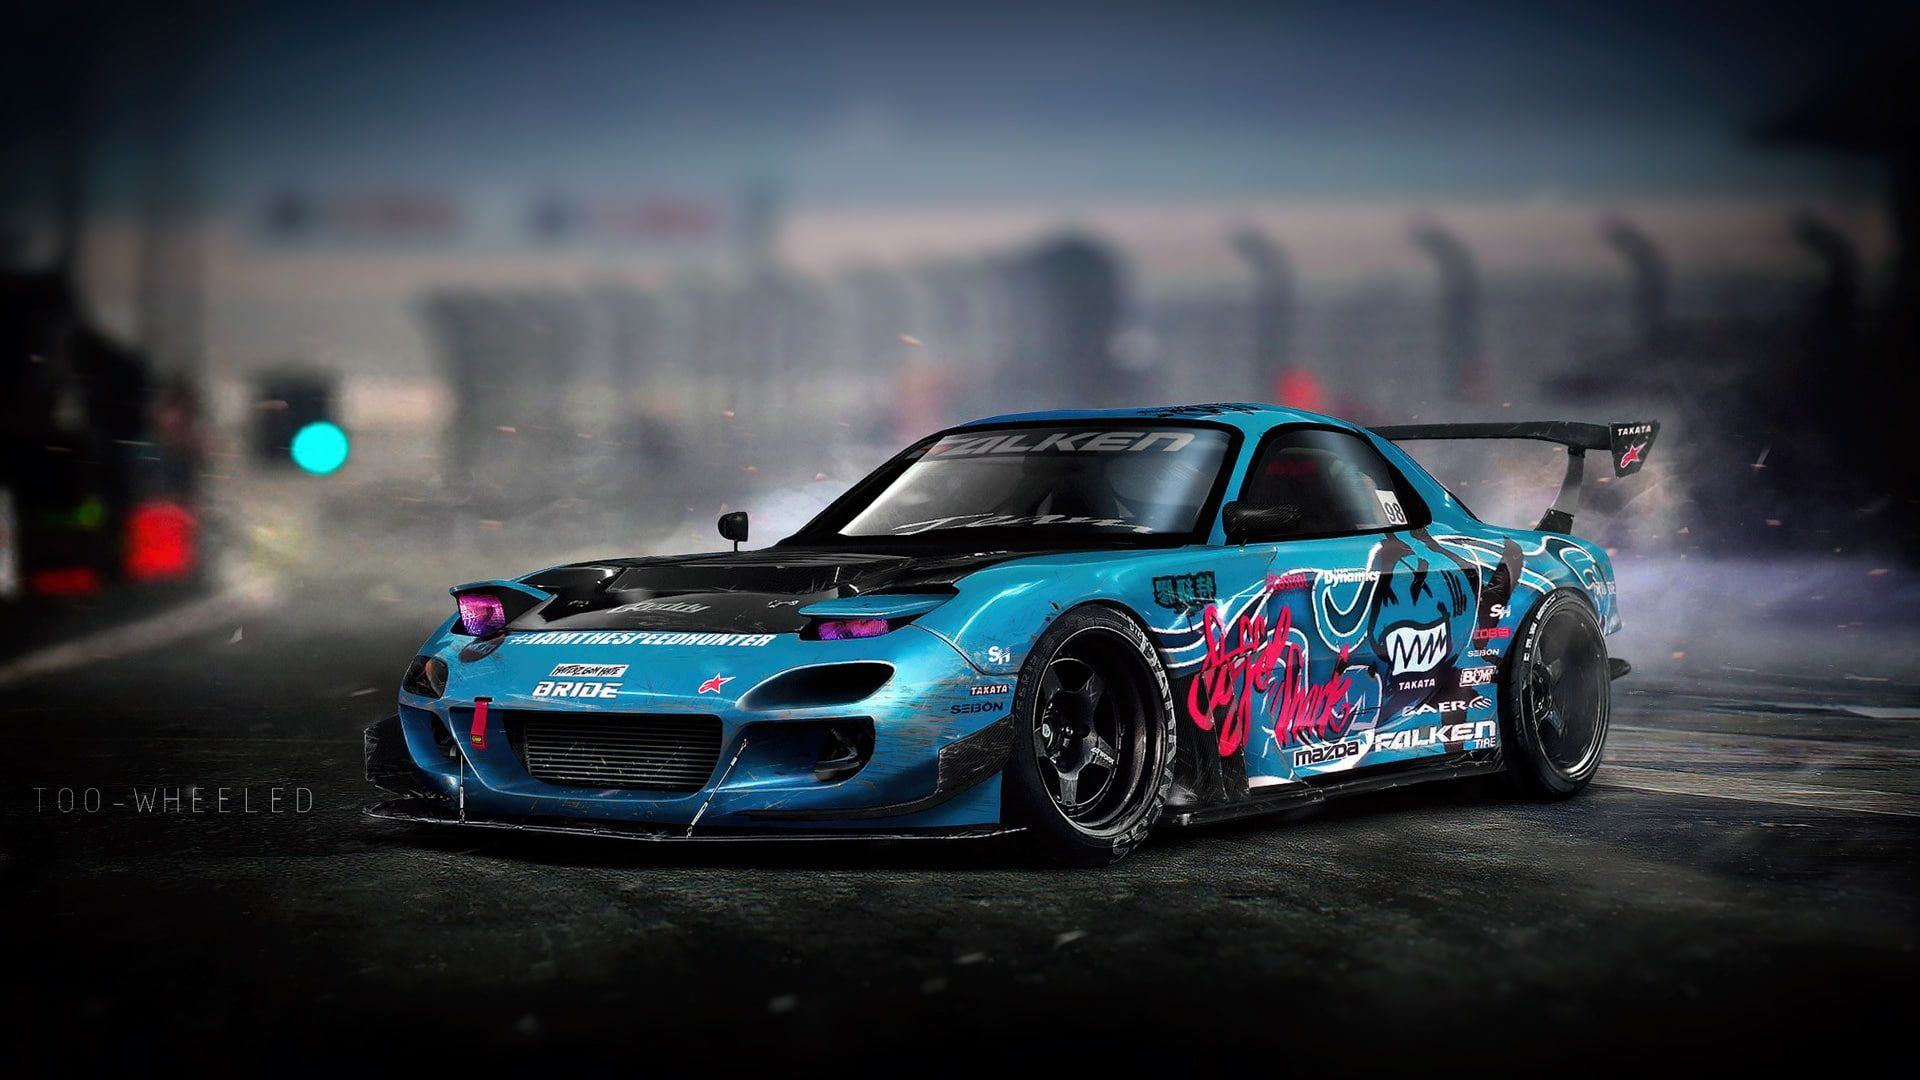 Auto Blue Machine Drift Mazda Illustration Mazda Rx7 Mazda Rx 7 Rx7 Vinyls Transport And Vehicles By Too Wheeled Too Wheeled 1080p In 2020 Mazda Rx7 Rx7 Mazda